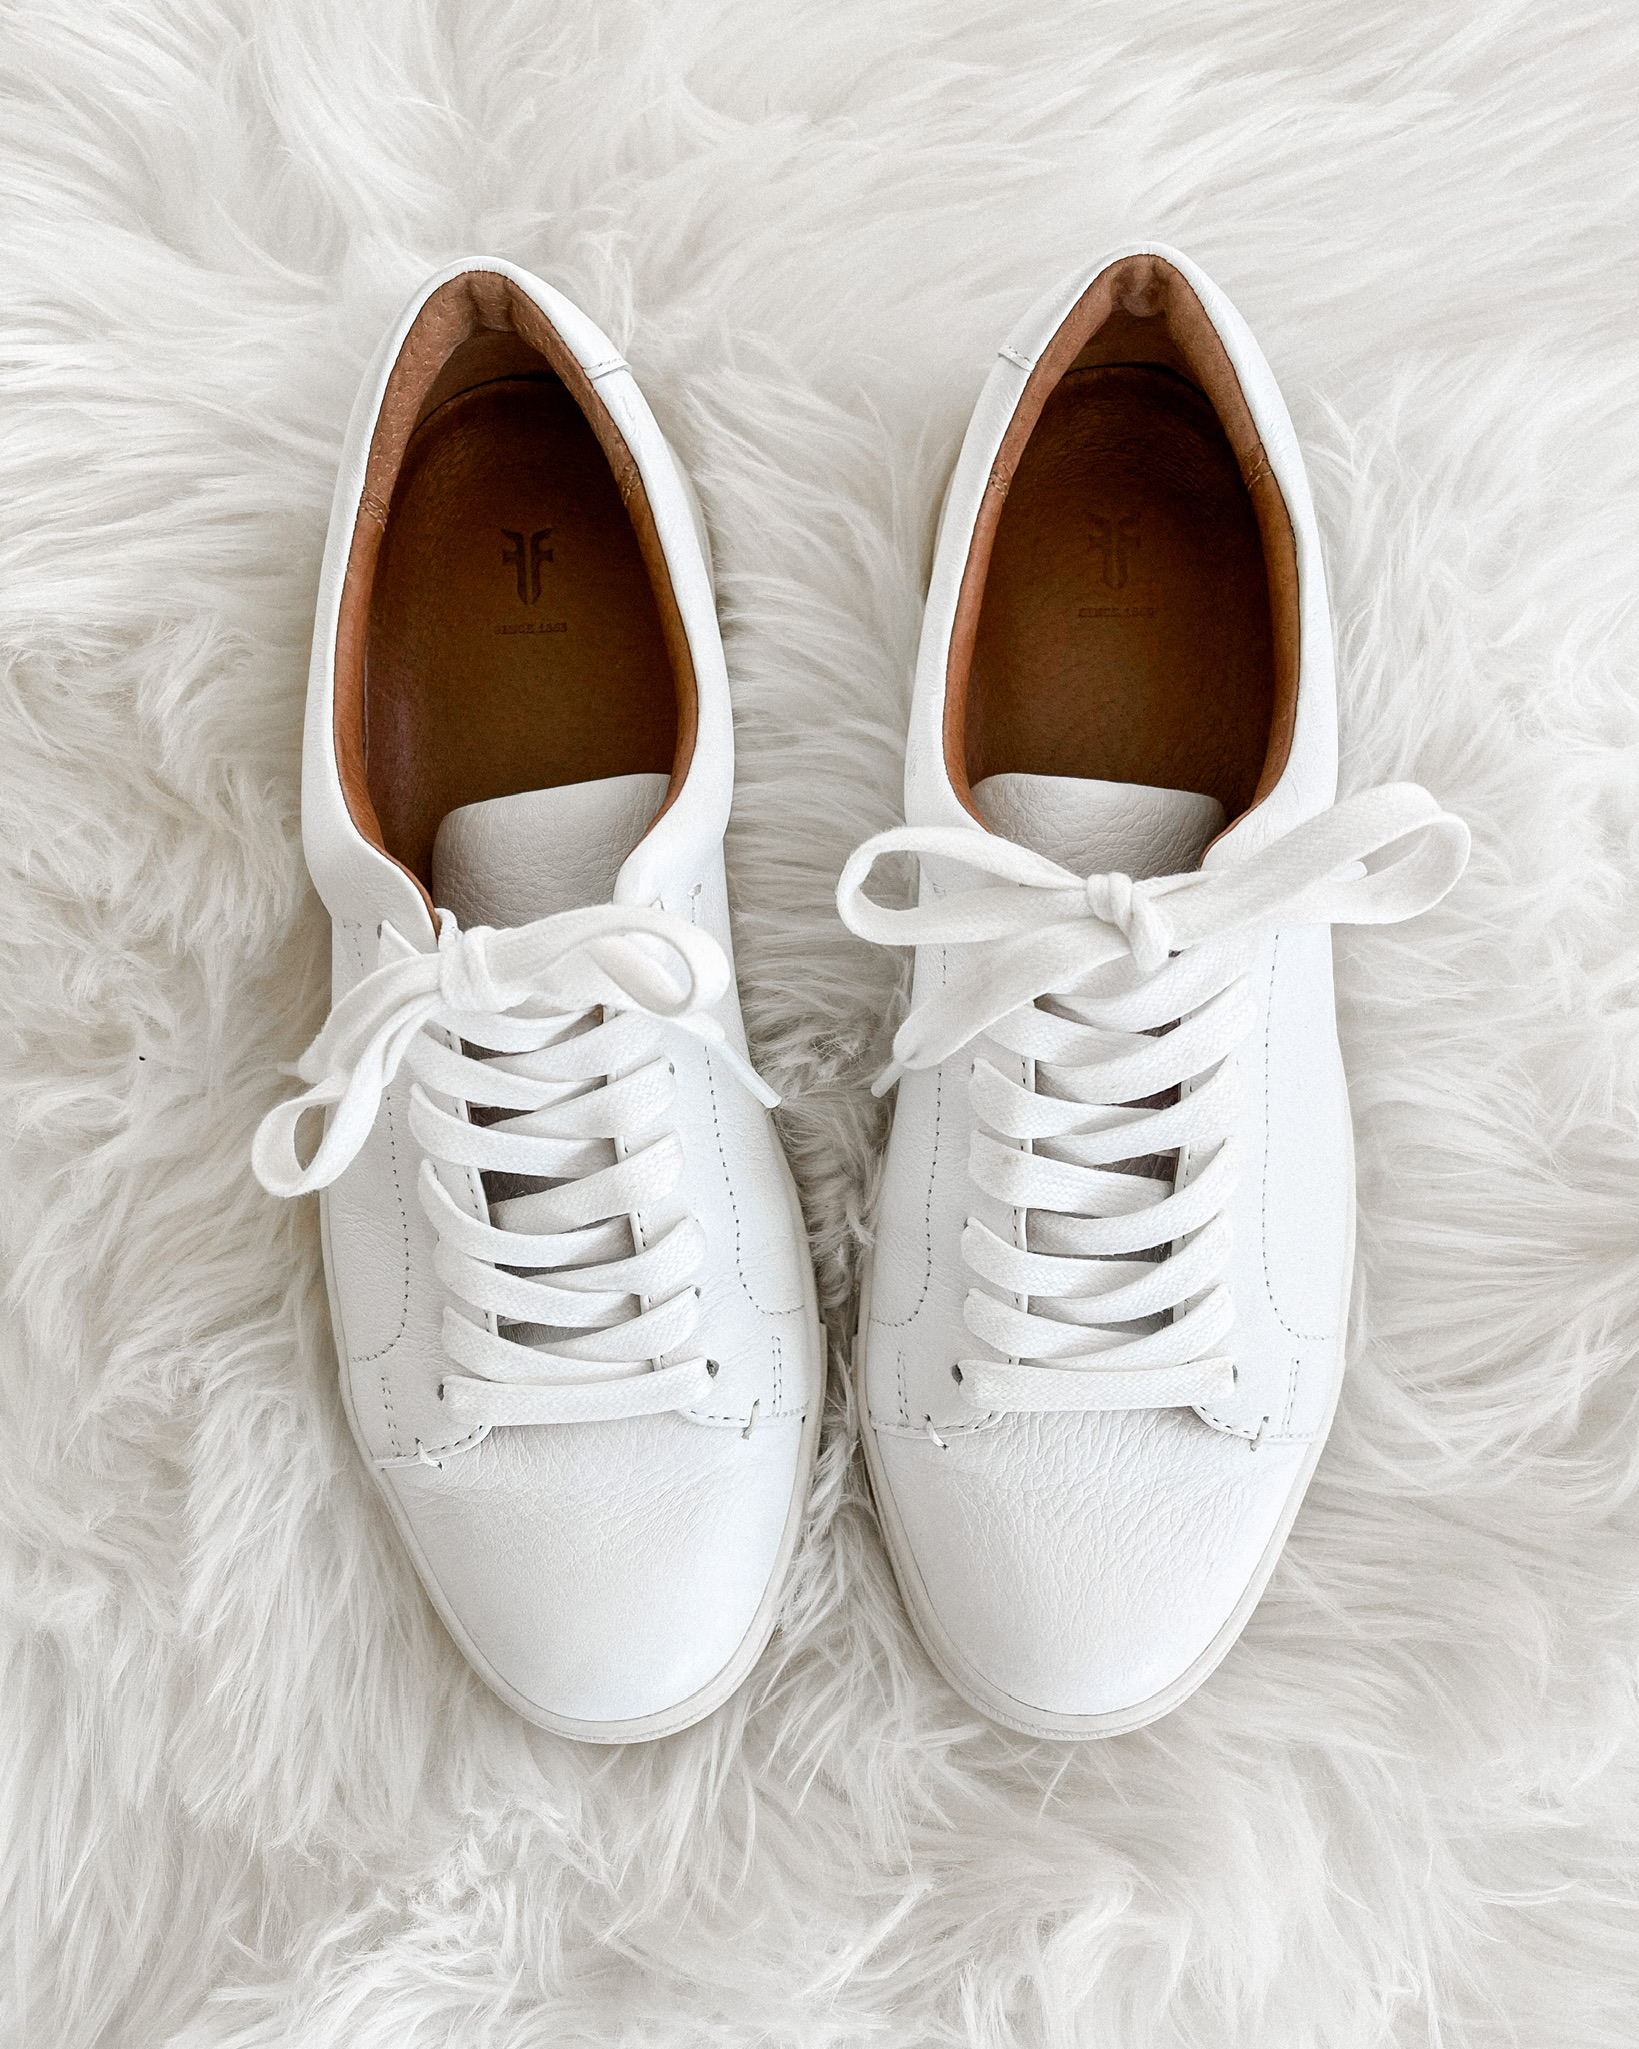 Fashion Jackson Frye White Ivy Sneakers